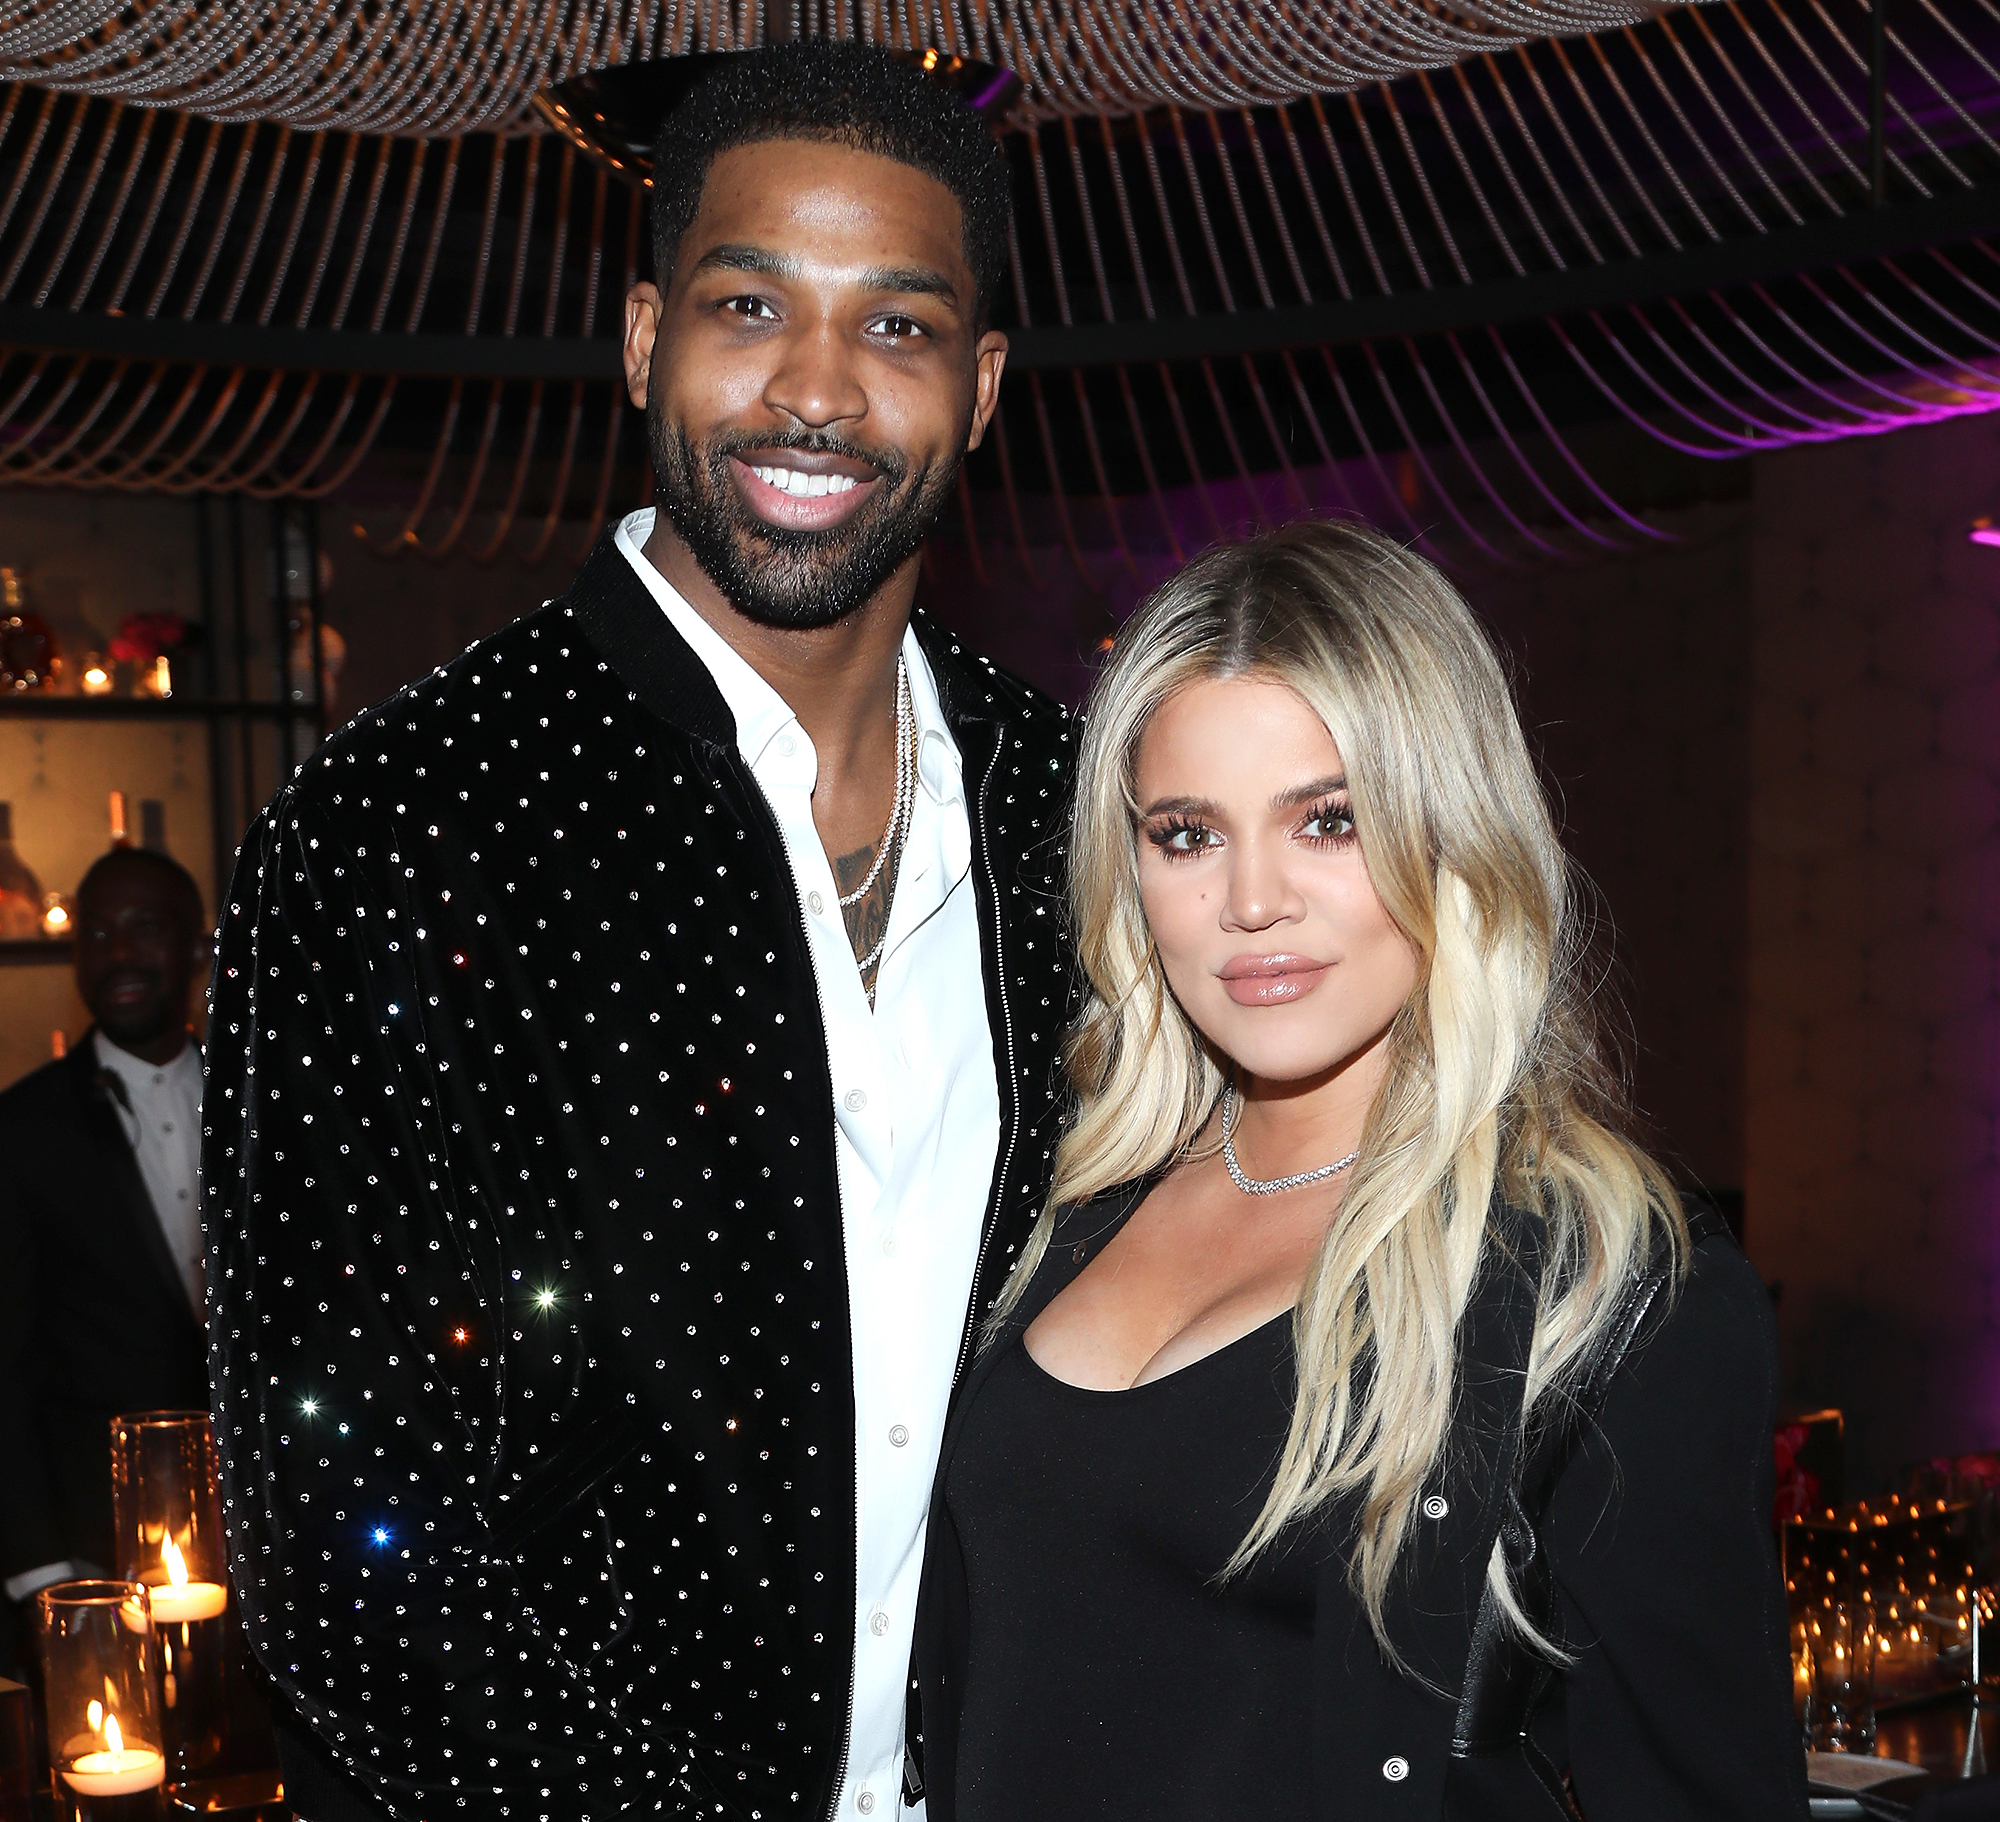 Khloe-Kardashian-not-ready-to-date-post-Tristan-Thompson-split